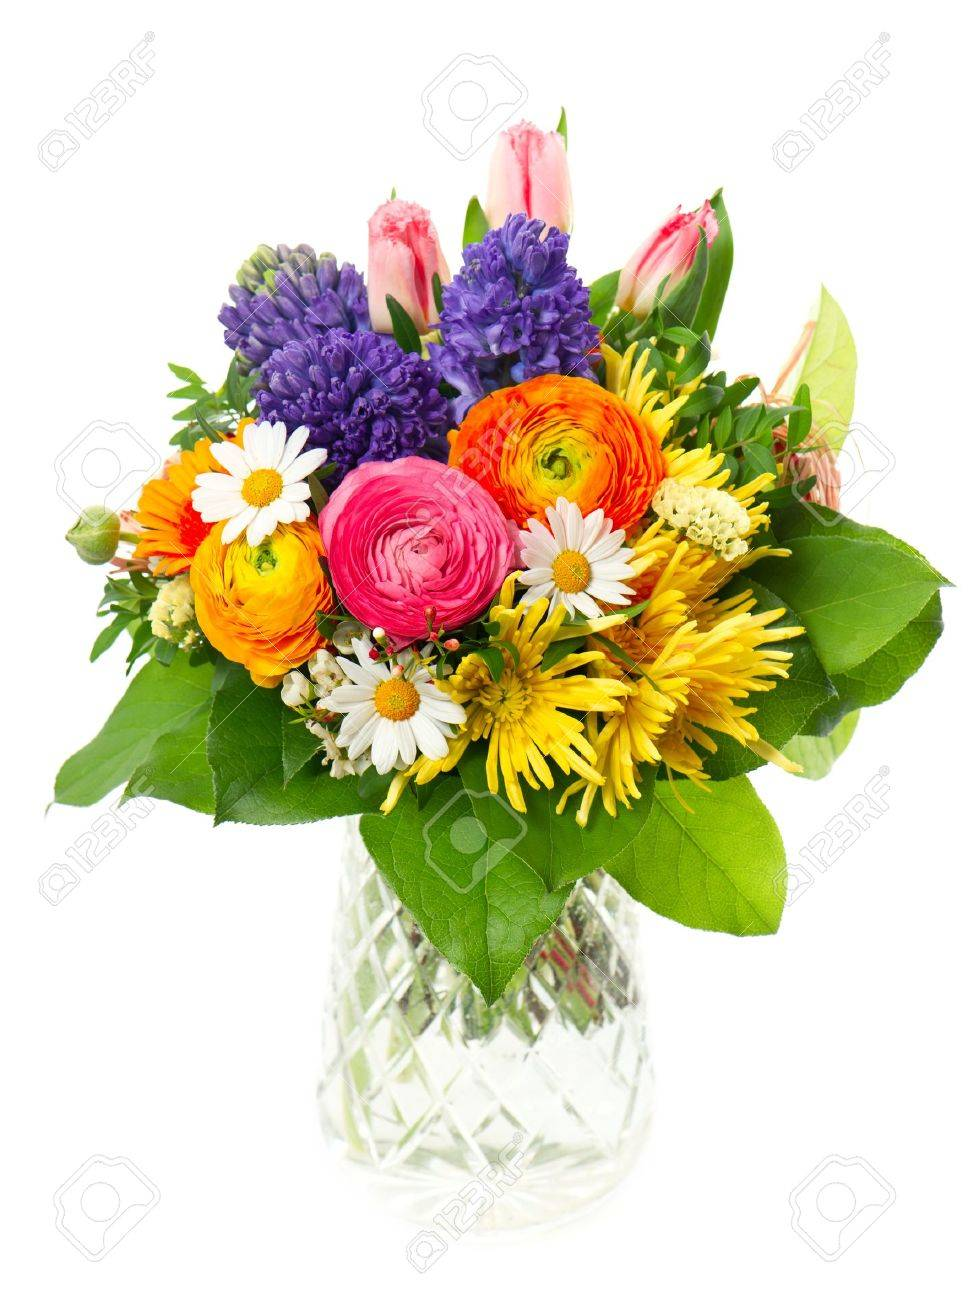 Beautiful Bouquet Of Colorful Spring Flowers In A Glass Vase Stock Photo Picture And Royalty Free Image Image 21088660